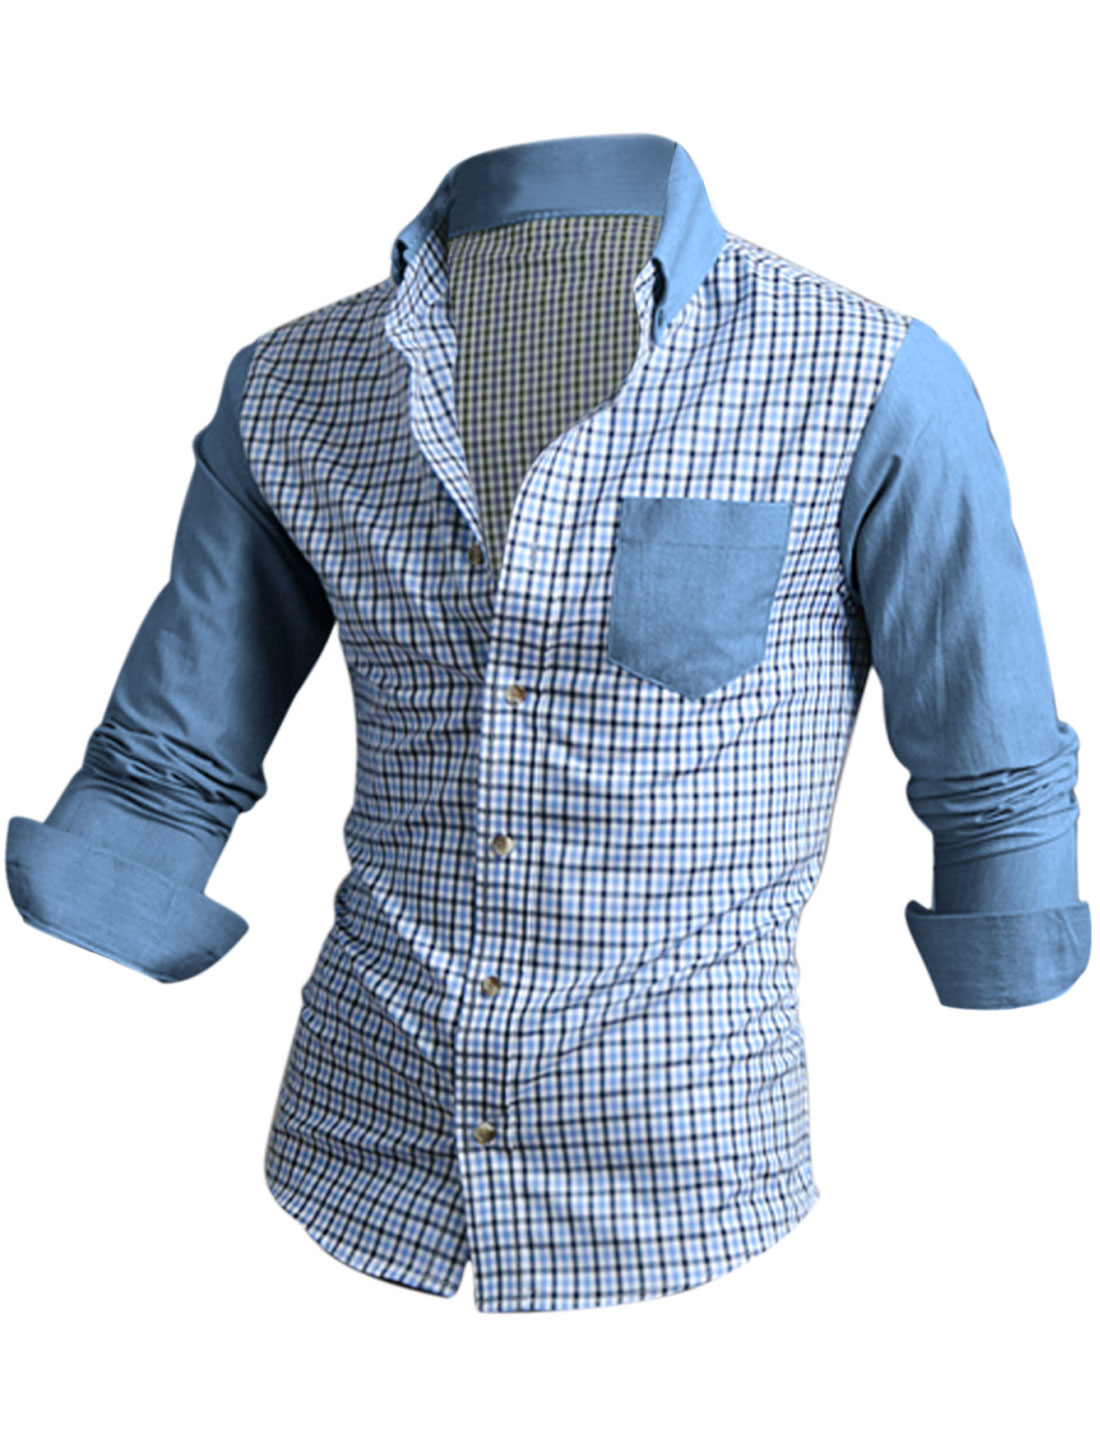 Men Checks Pattern Single Breasted Contrast Color Shirt Light Blue M